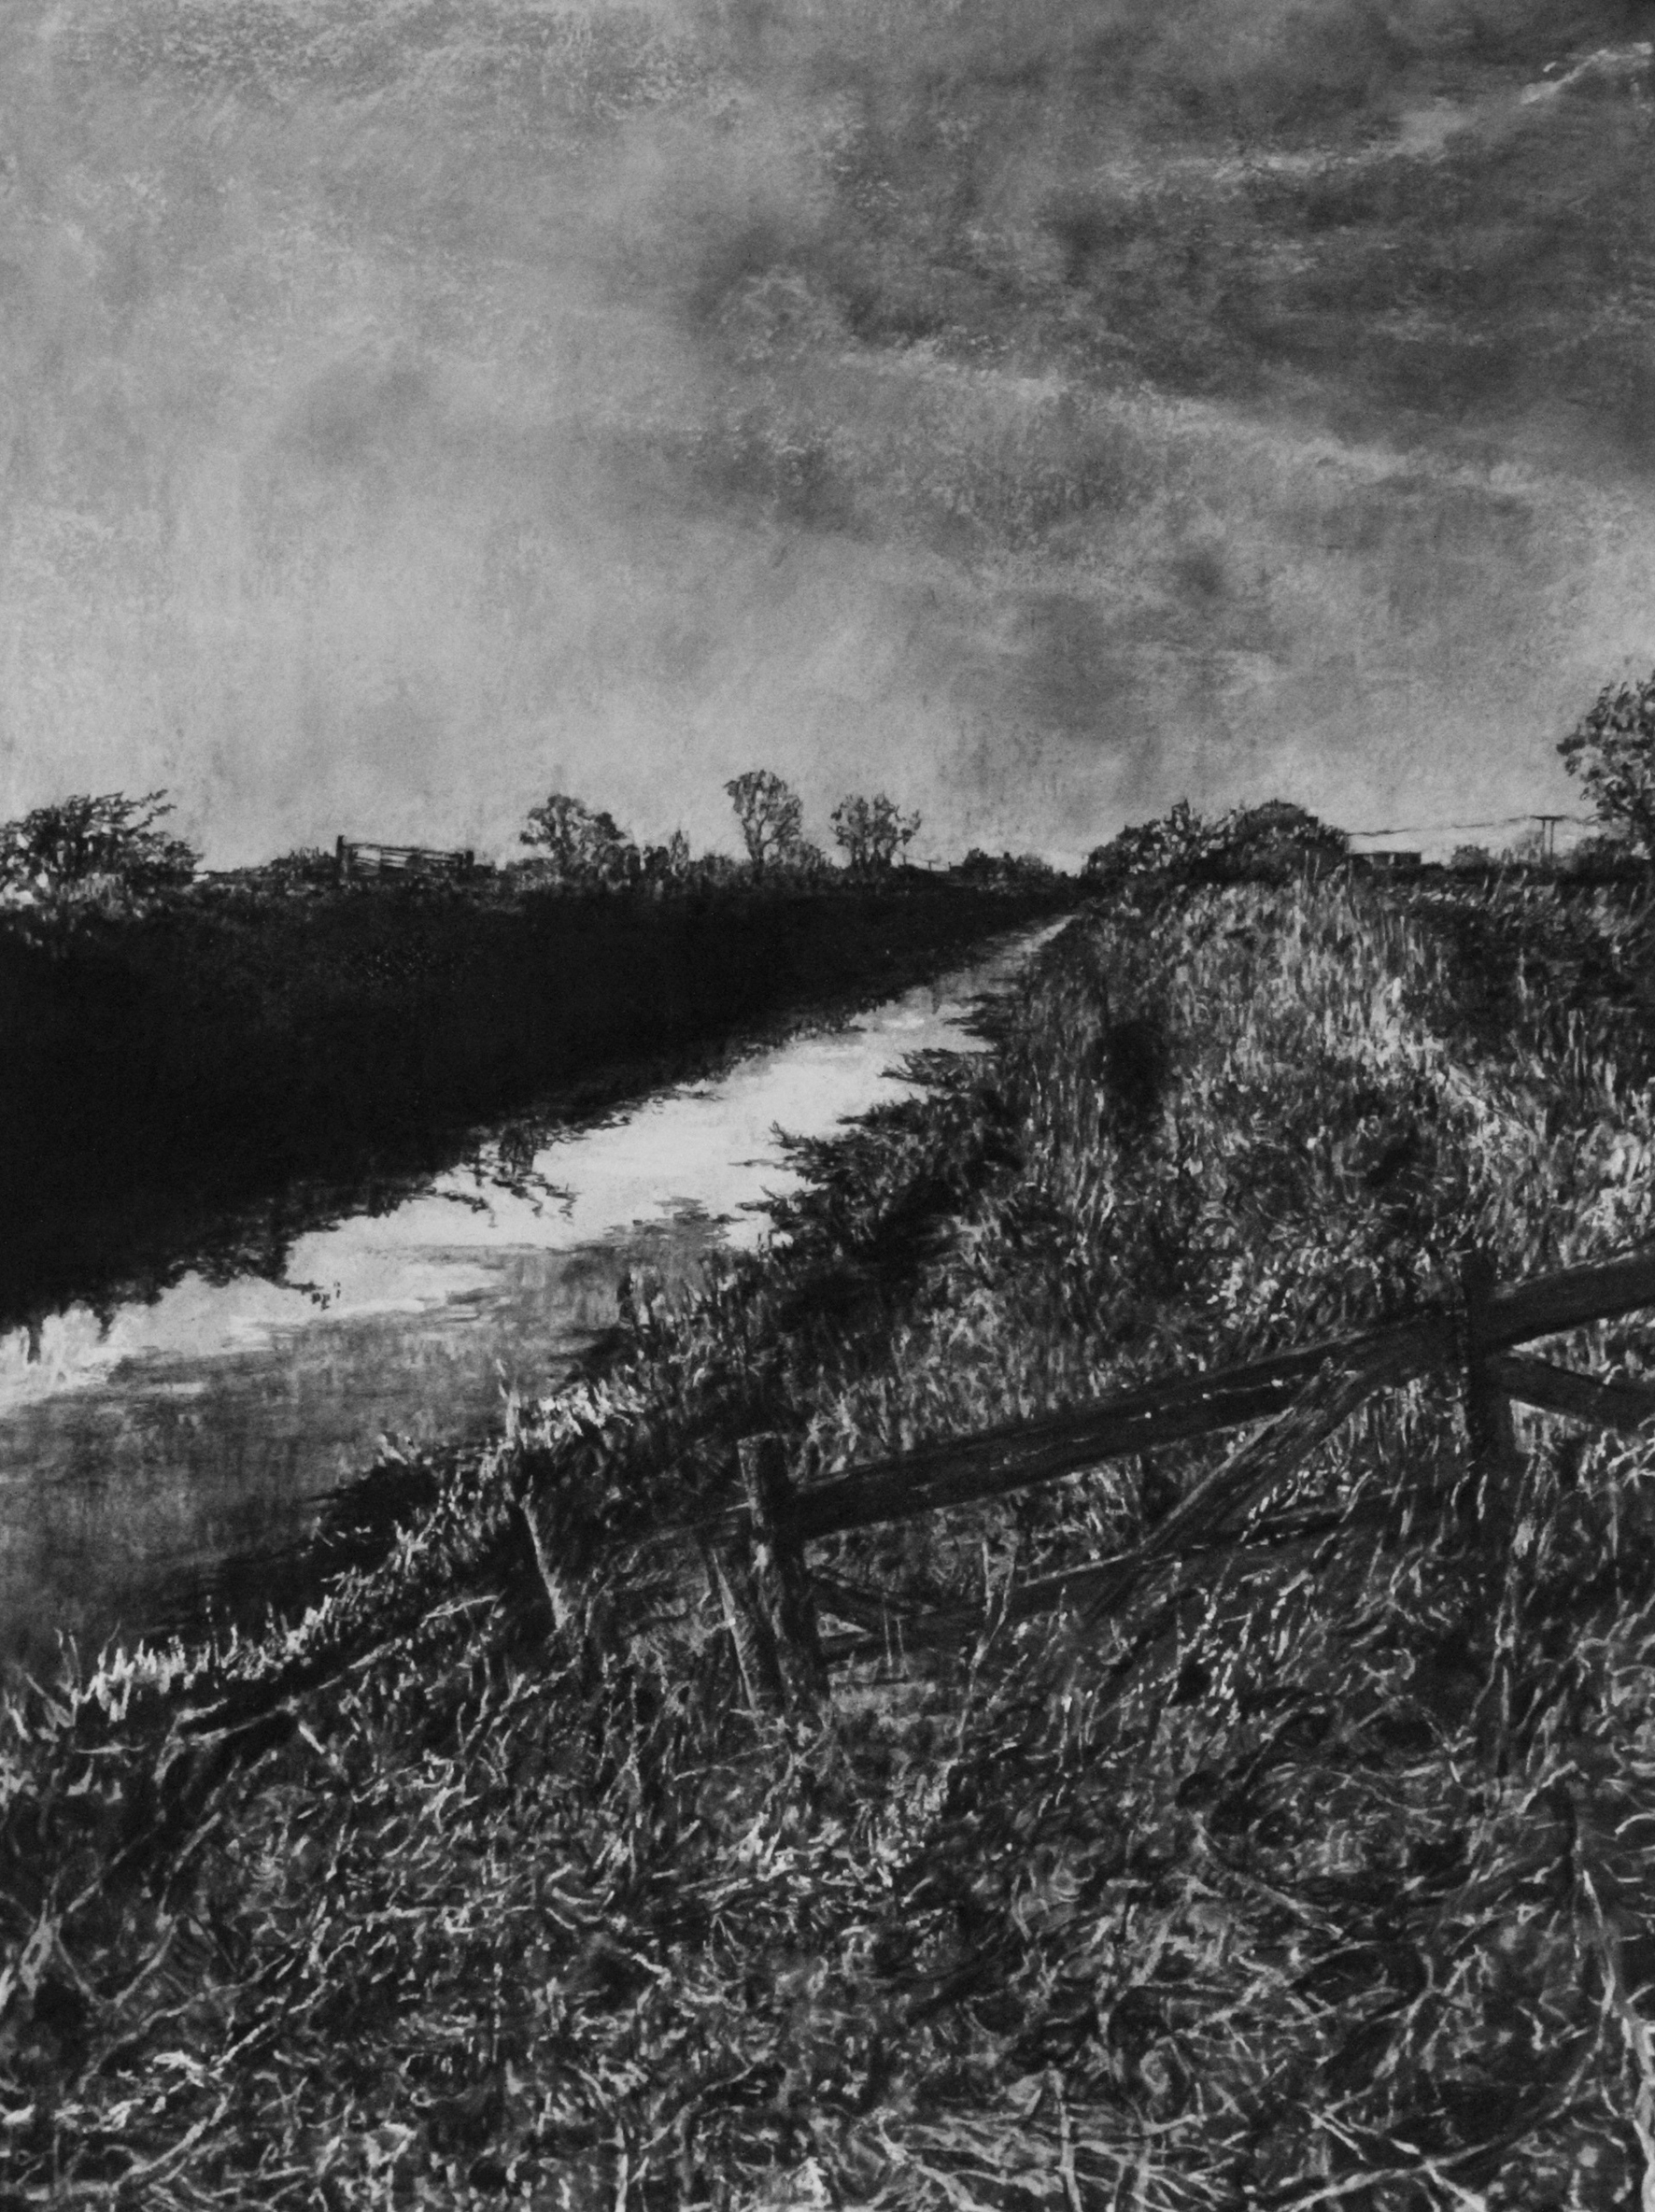 Judith Tucker,  Towpath,  2017, Charcoal, varnish and white pigment on arches paper. 76 x 56 cm